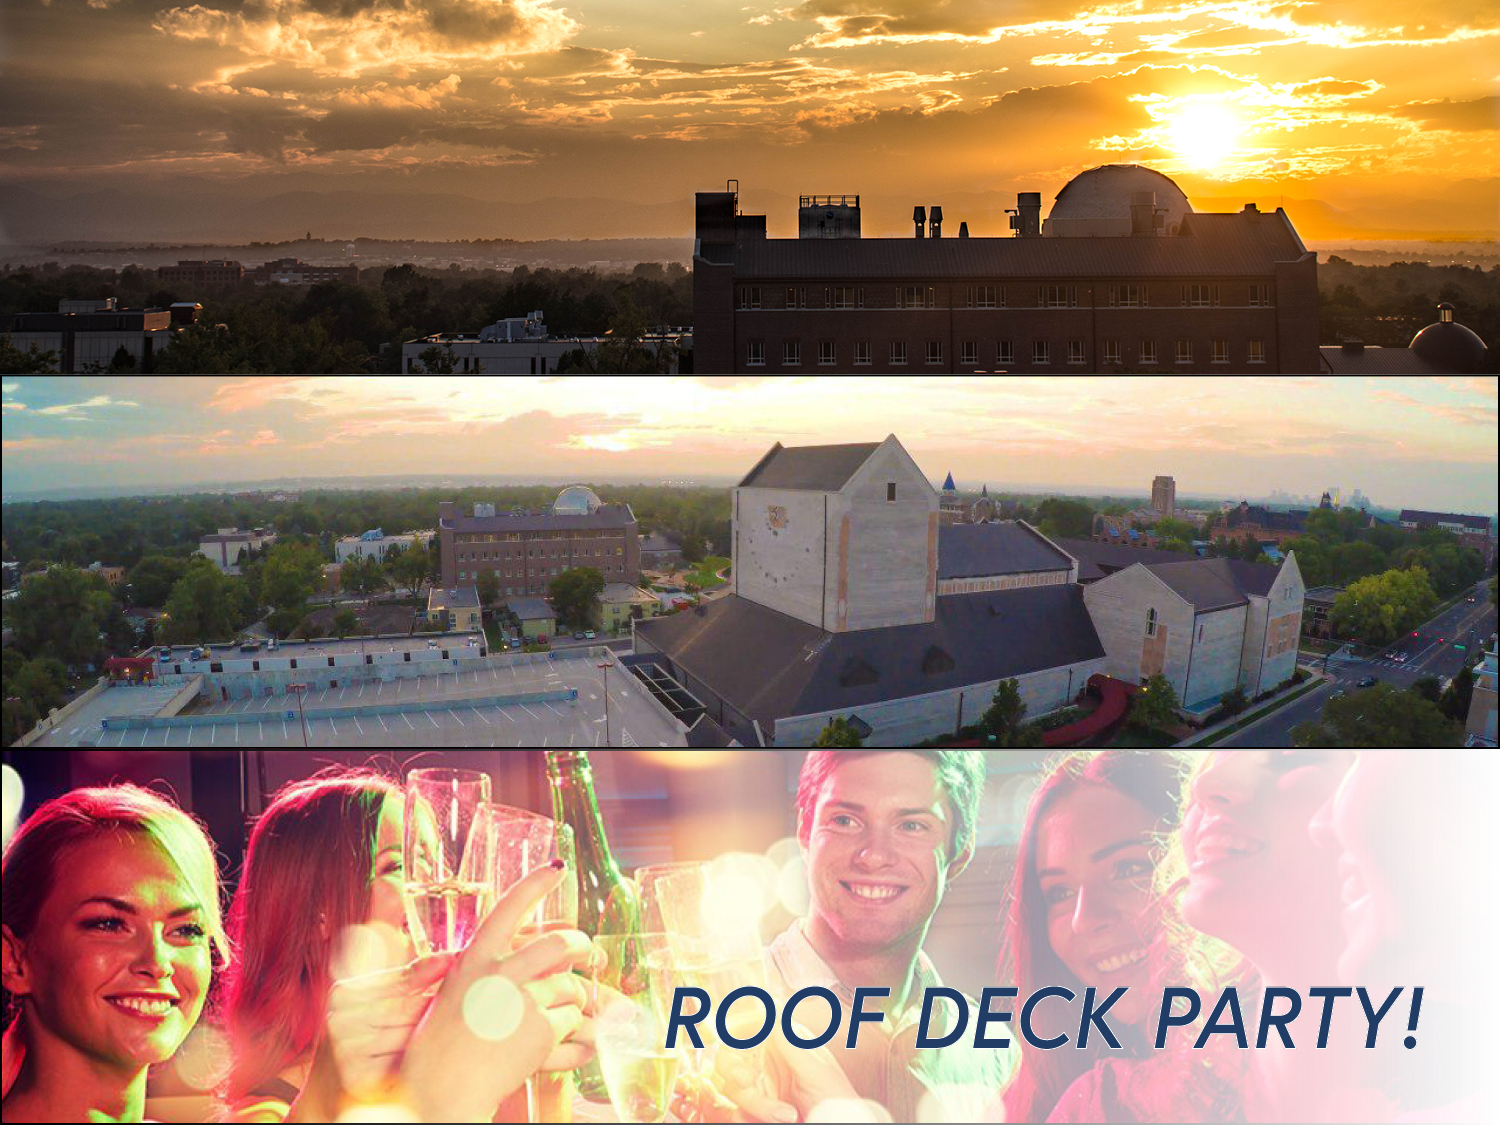 Roofdeck Party.jpg